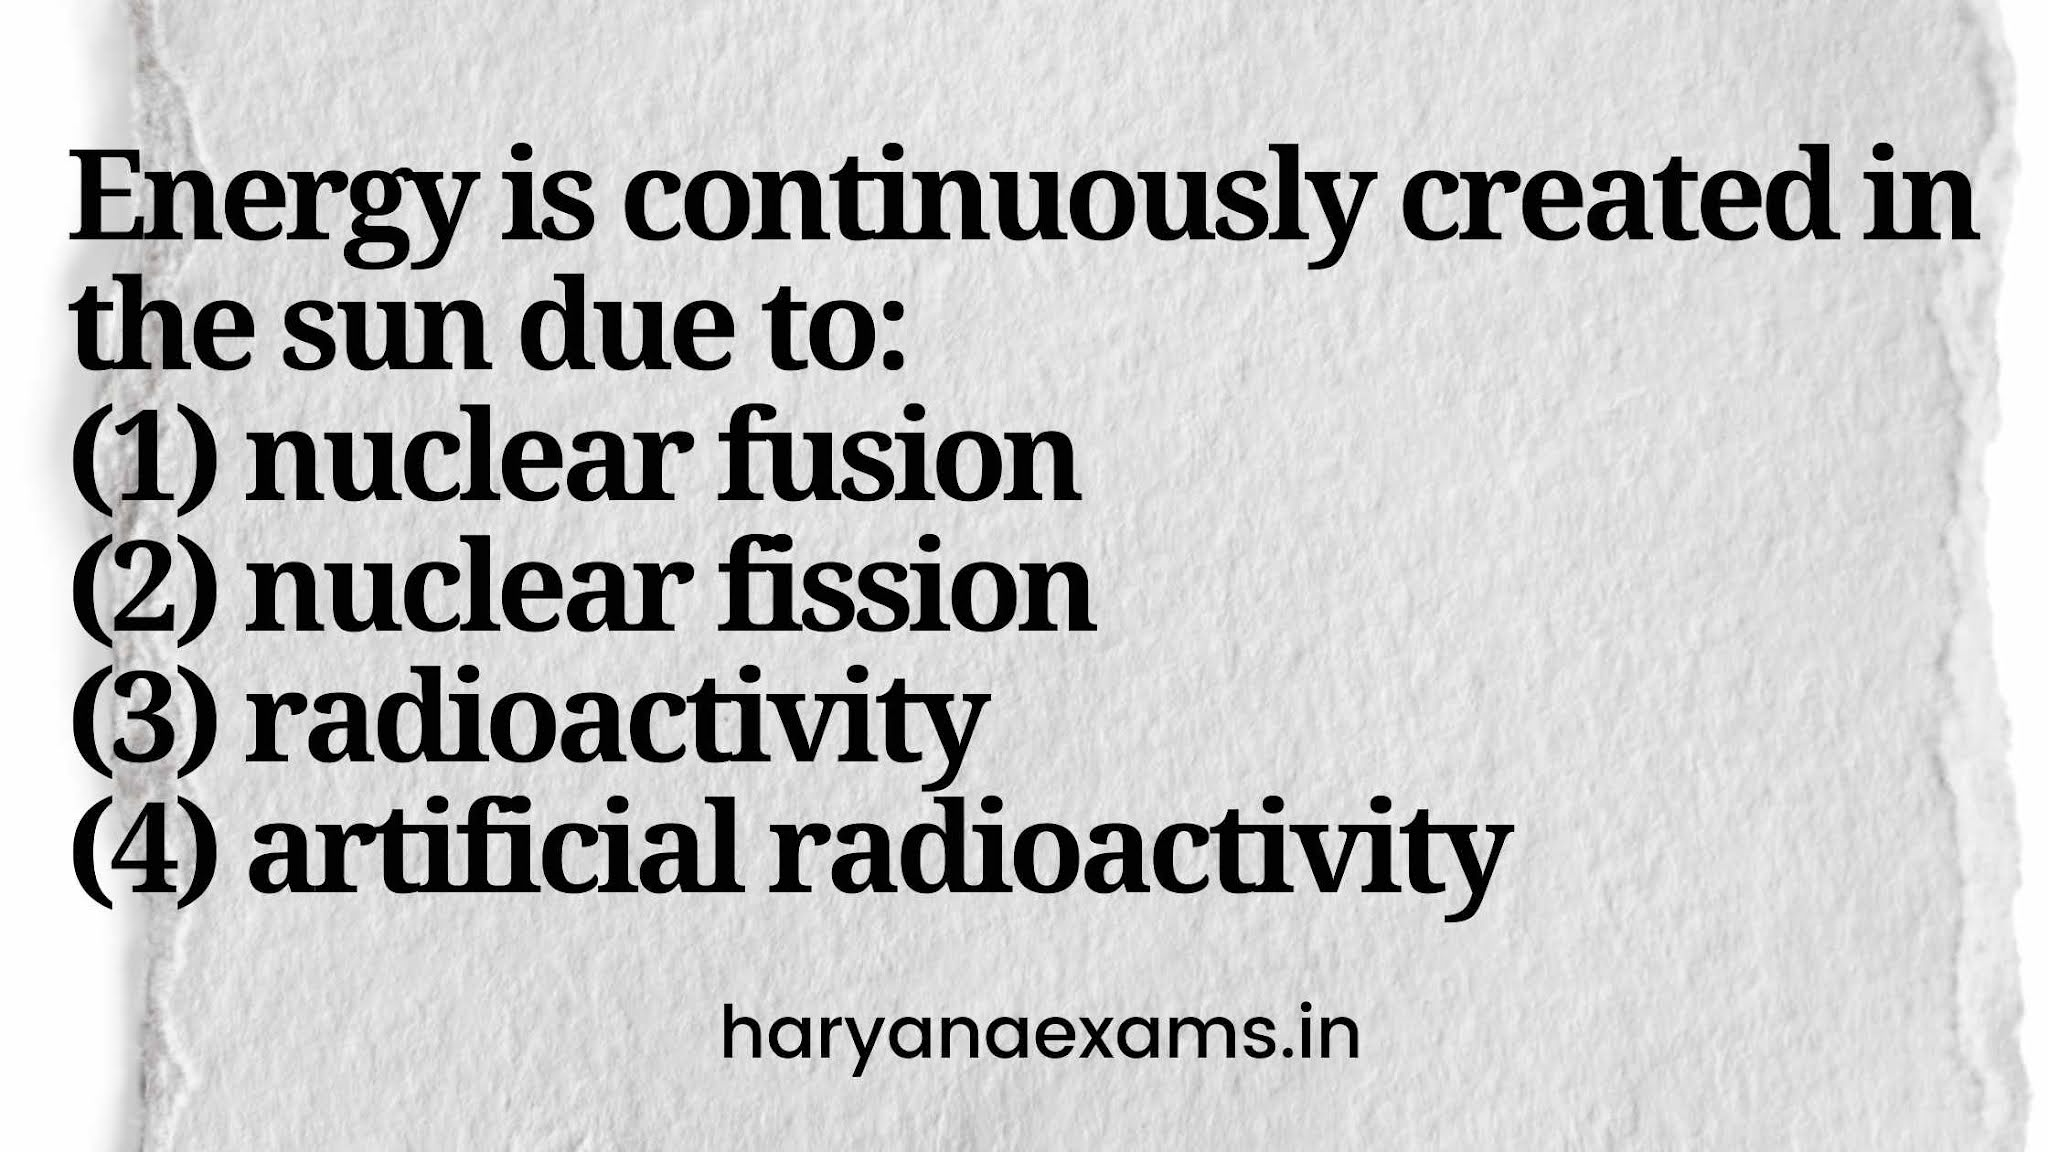 Energy is continuously created in the sun due to:   (1) nuclear fusion   (2) nuclear fission   (3) radioactivity   (4) artificial radioactivity